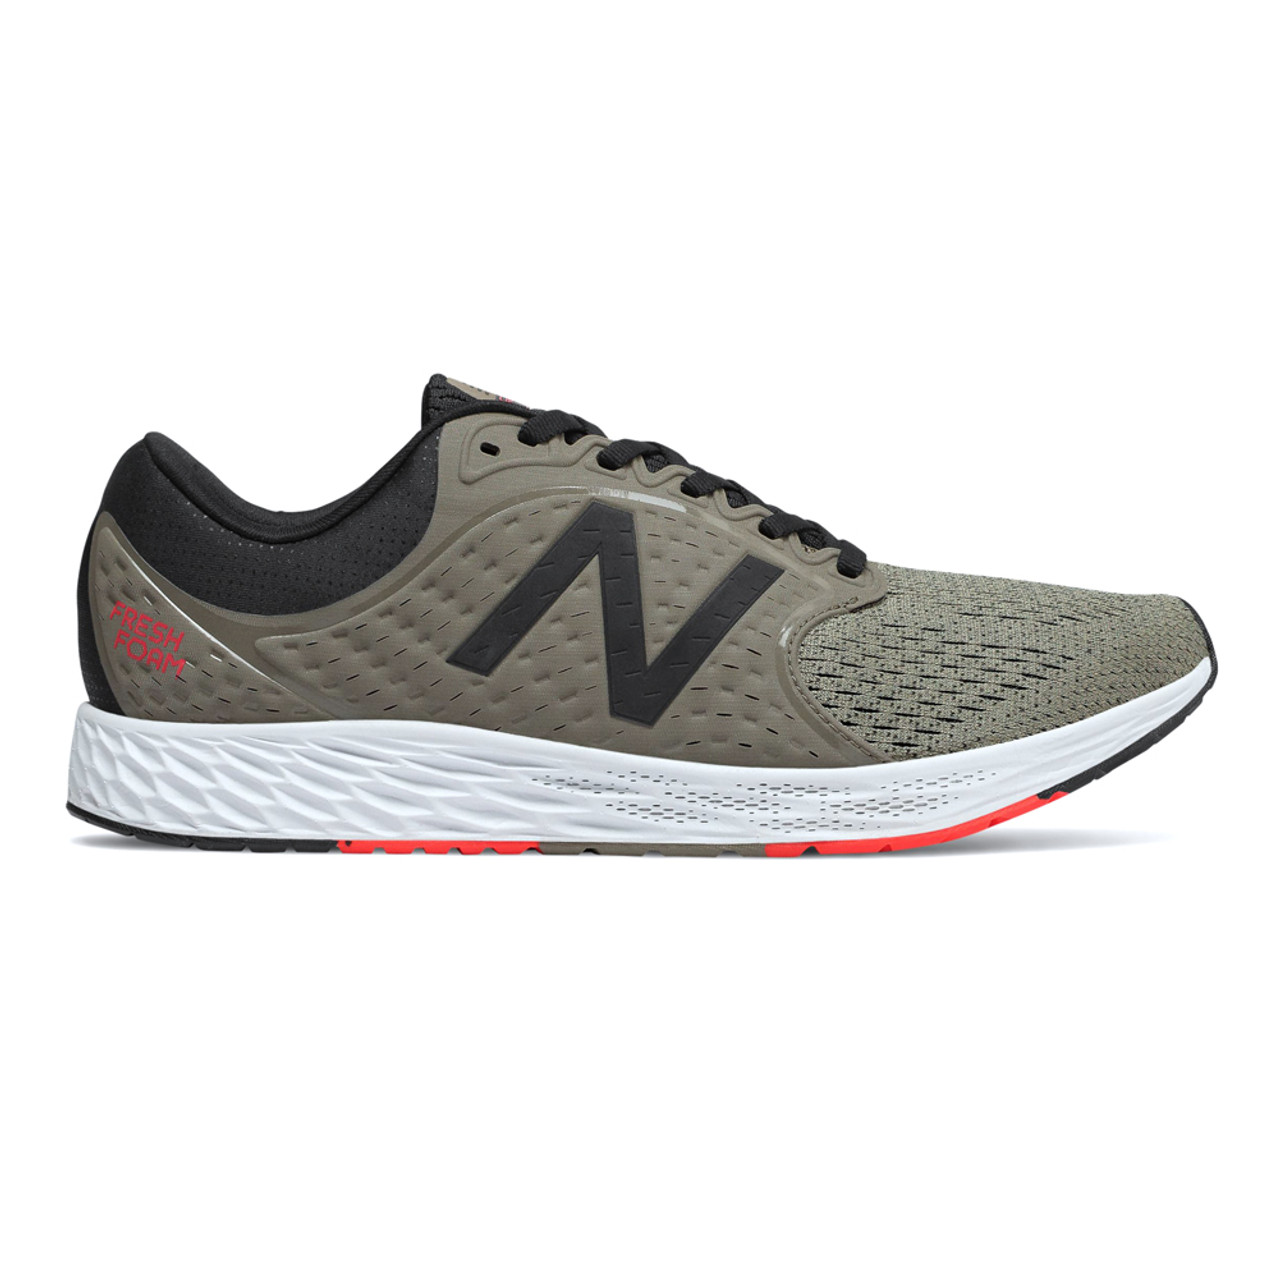 New Balance Mrl420 Mens Grey Trainers Outlet